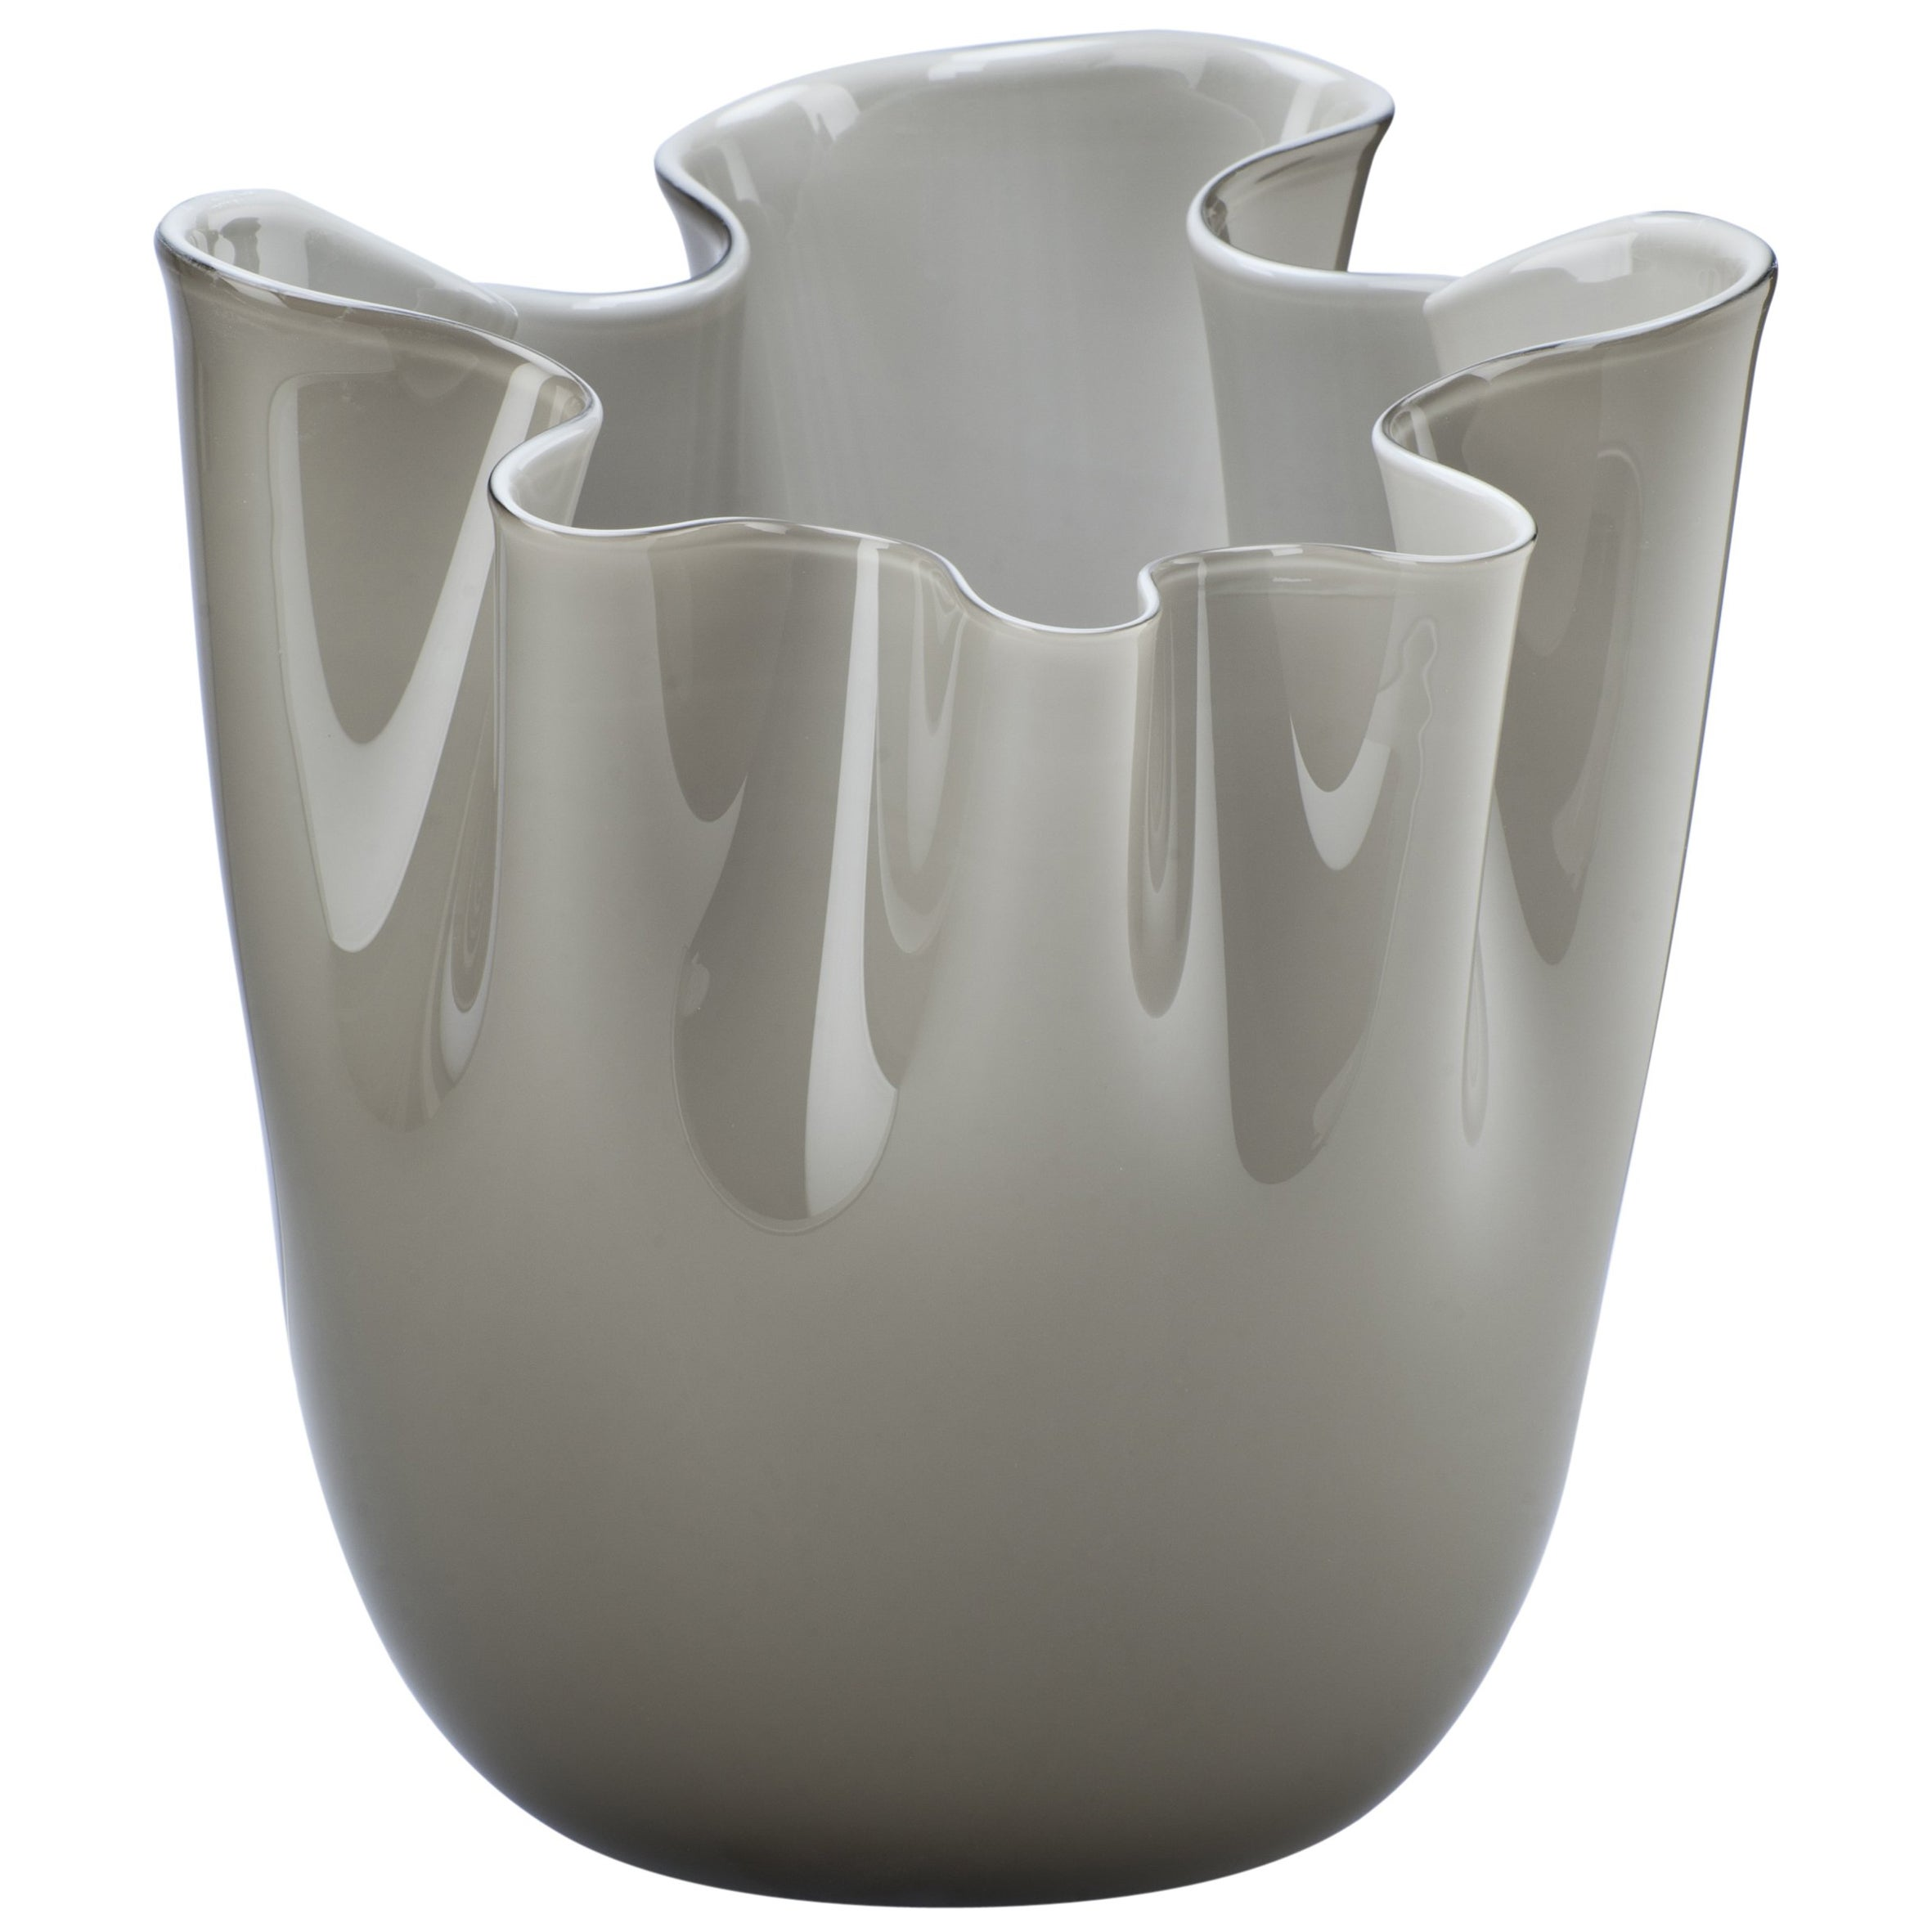 Venini Fazzoletto Large Glass Vase in Gray by Fulvio Bianconi and Paolo Venini